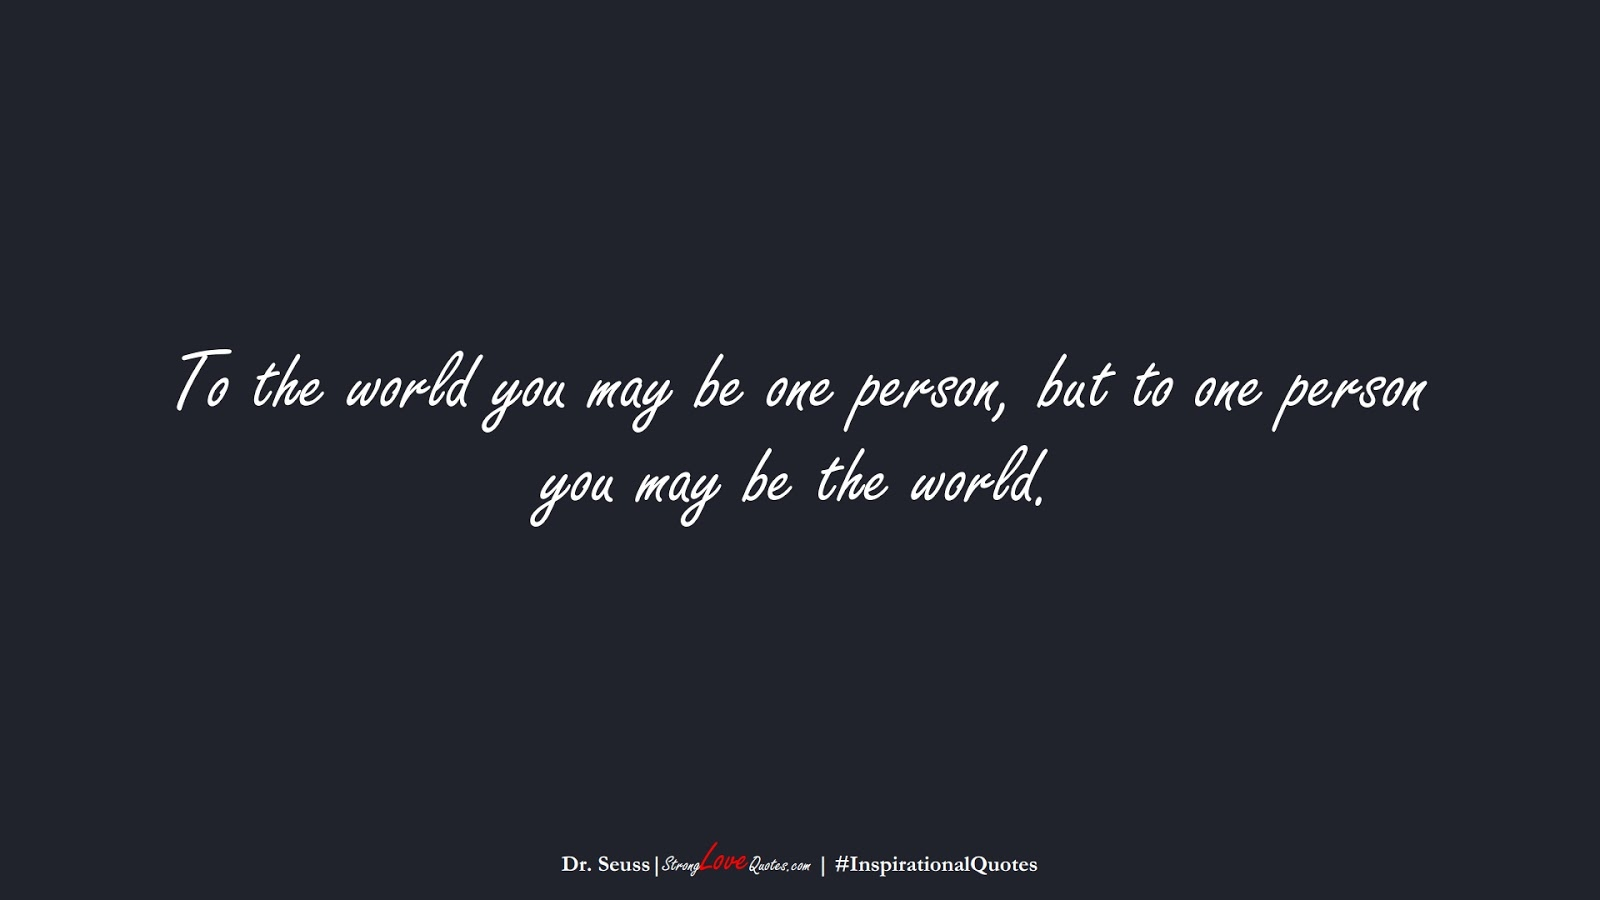 To the world you may be one person, but to one person you may be the world. (Dr. Seuss);  #InspirationalQuotes